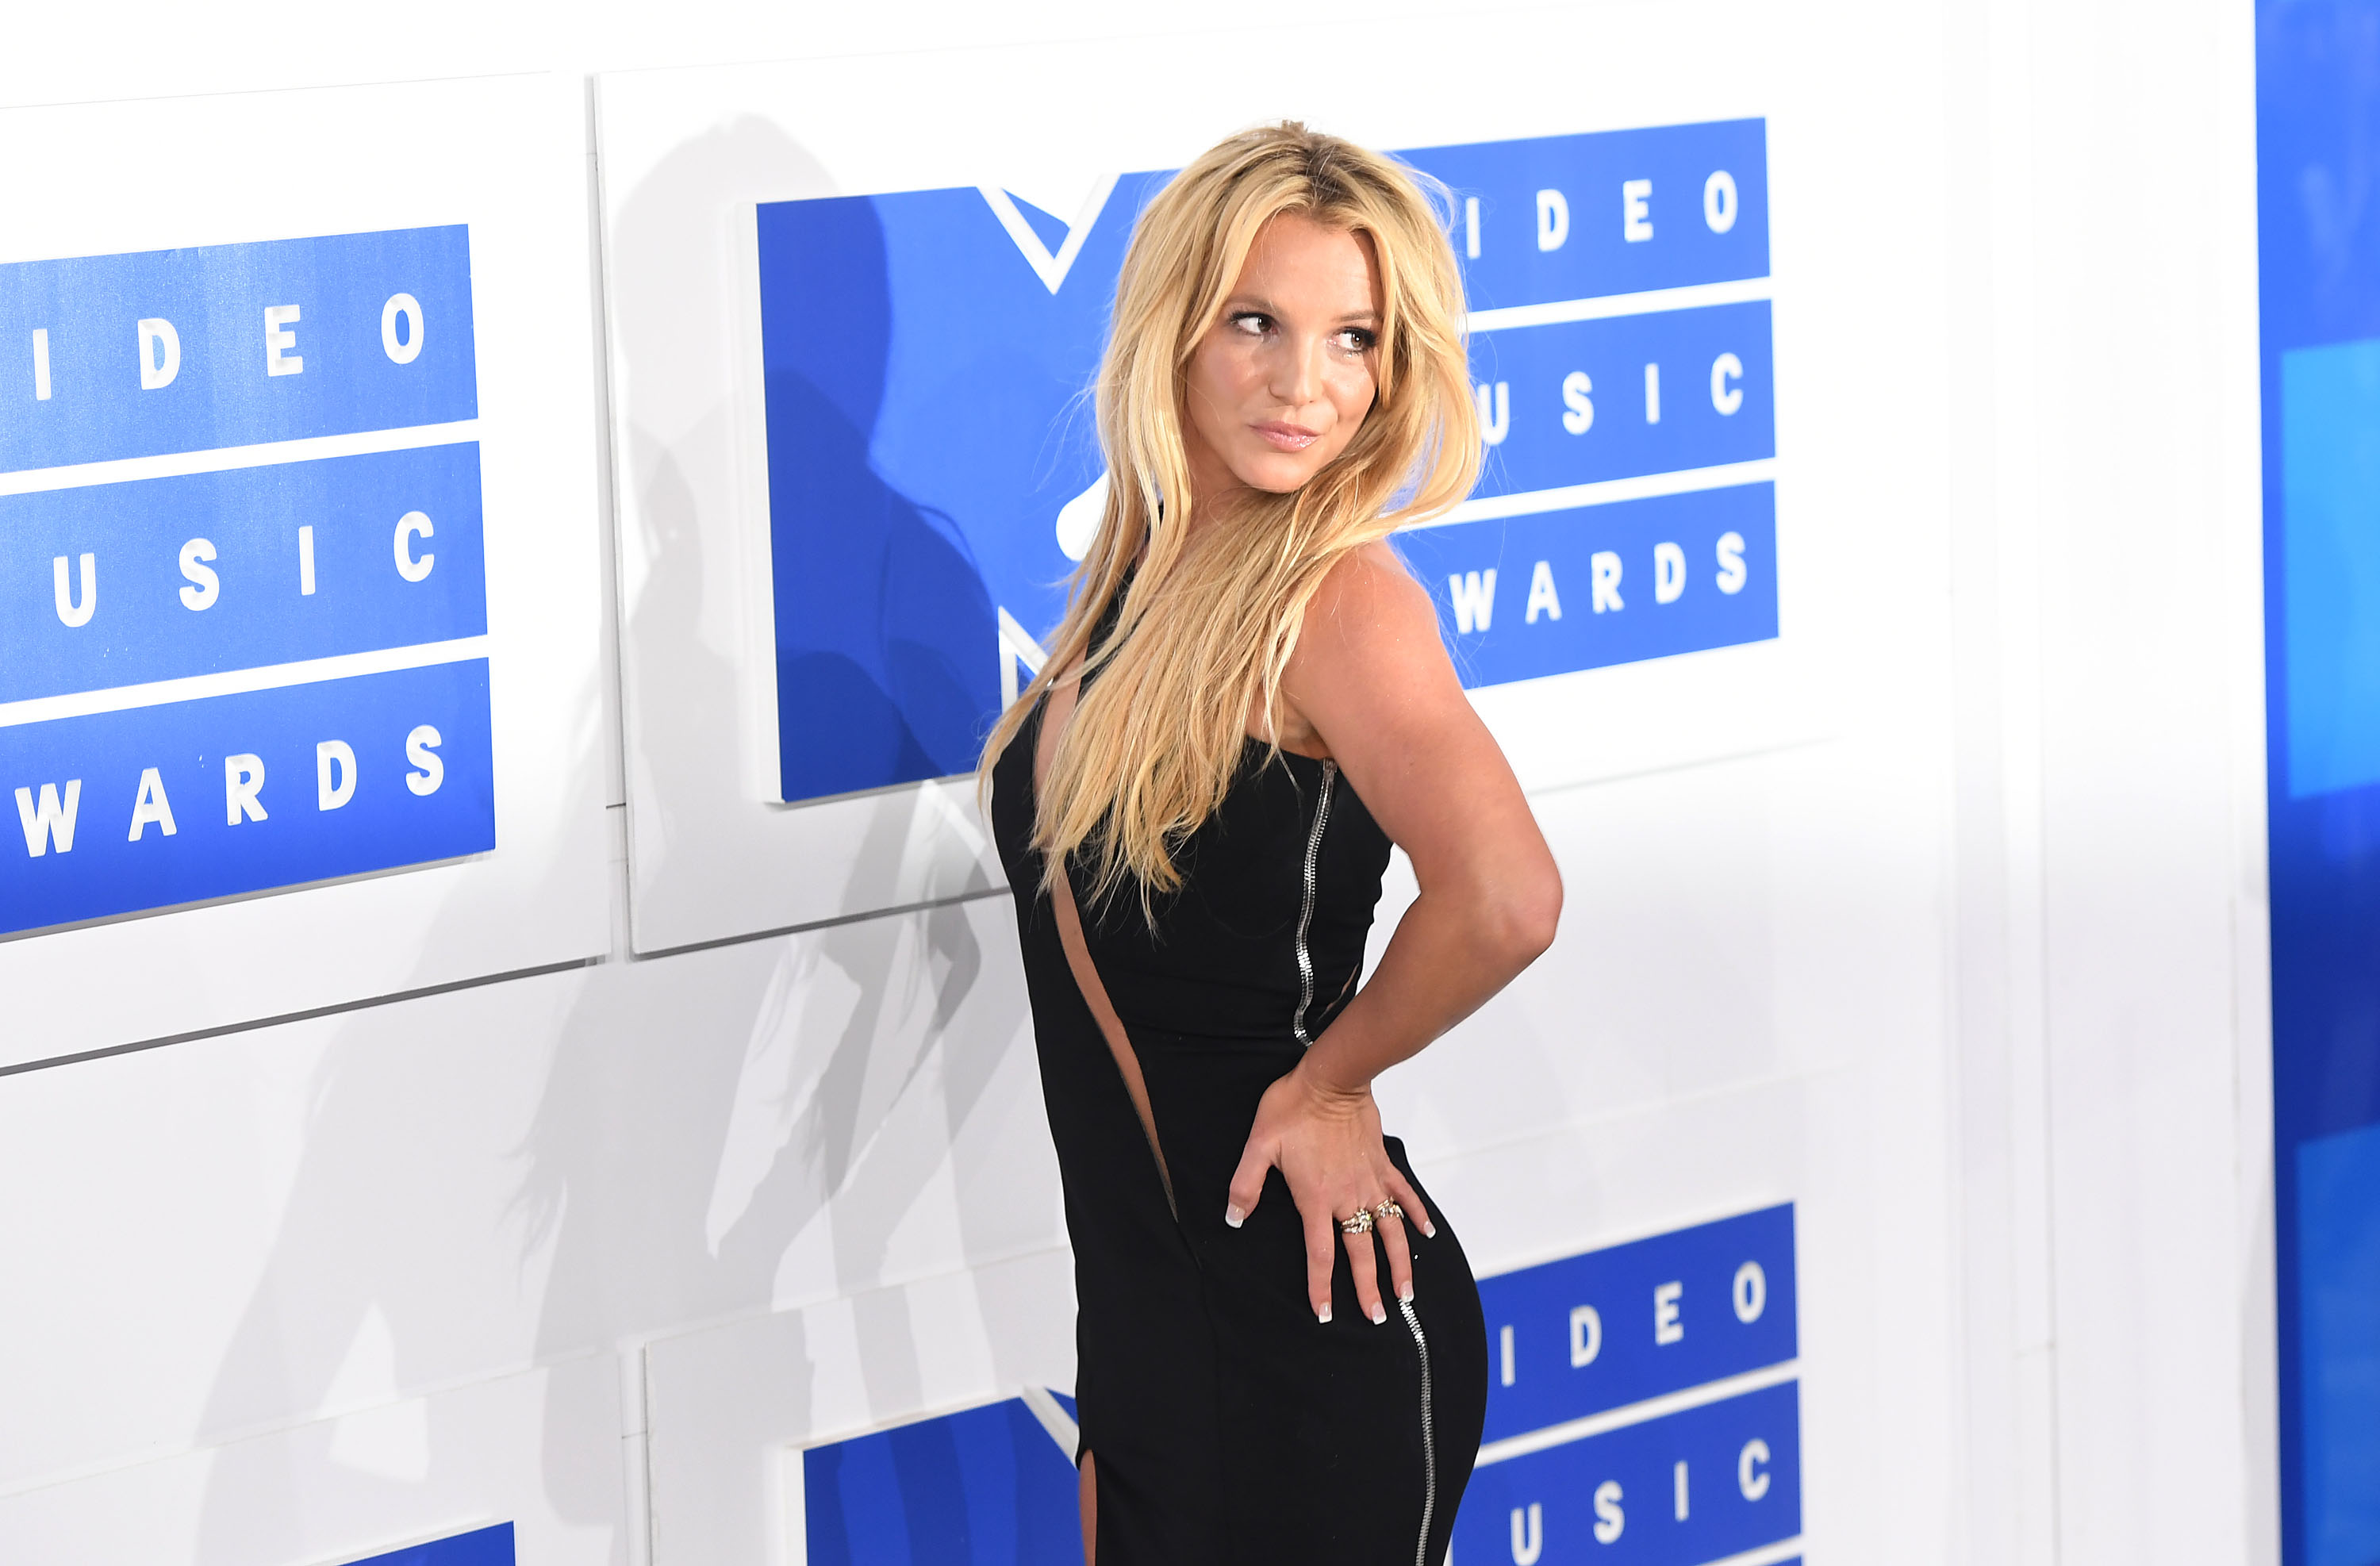 Britney Spears arrives at the 2016 MTV Video Music Awards at Madison Square Garden on August 28, 2016 in New York City.  (Photo by C Flanigan/FilmMagic)